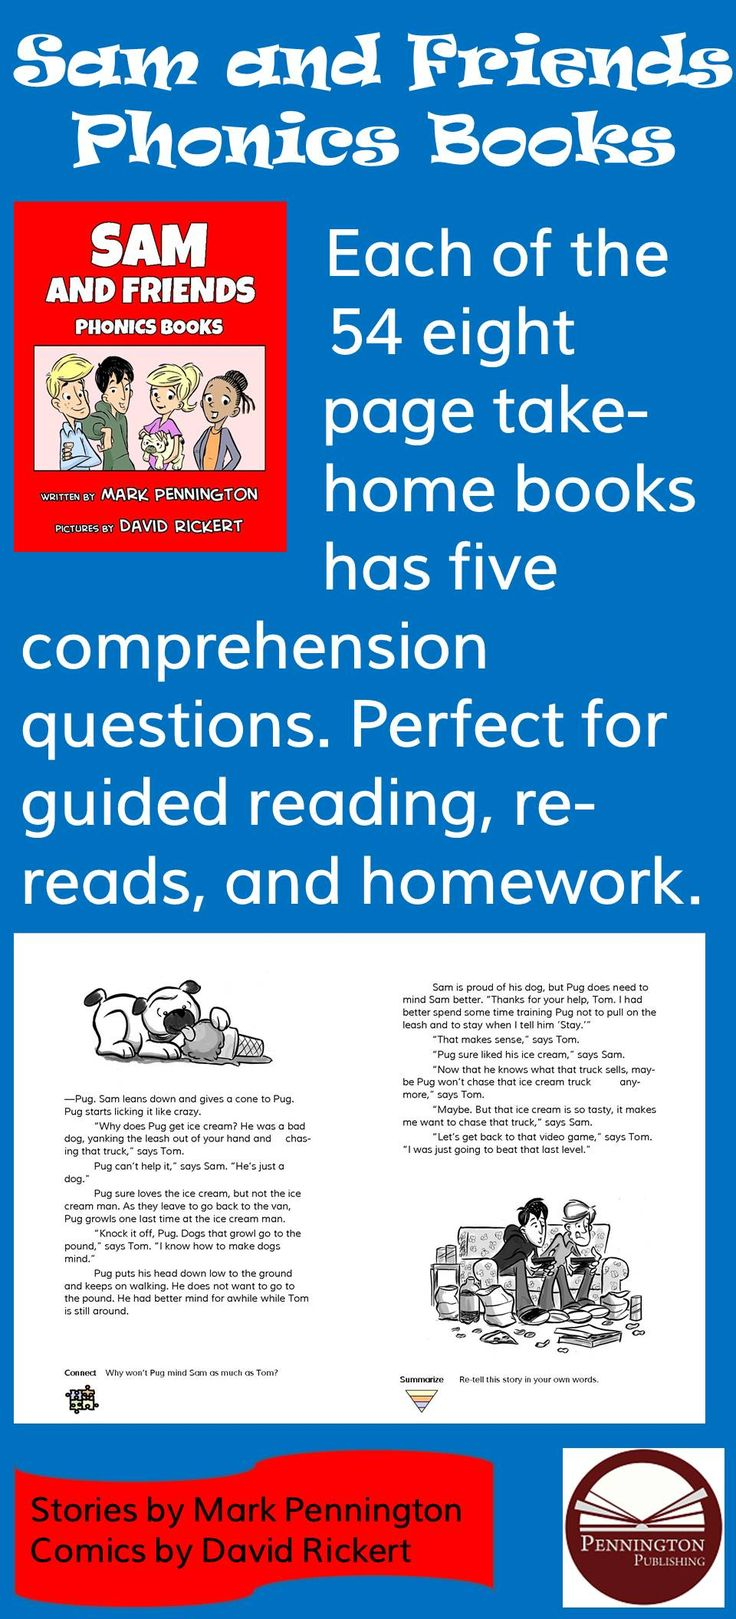 Worksheet Free Printable Phonics Books 1000 ideas about phonics books on pinterest the sam and friends are illustrated eight page take home designed for